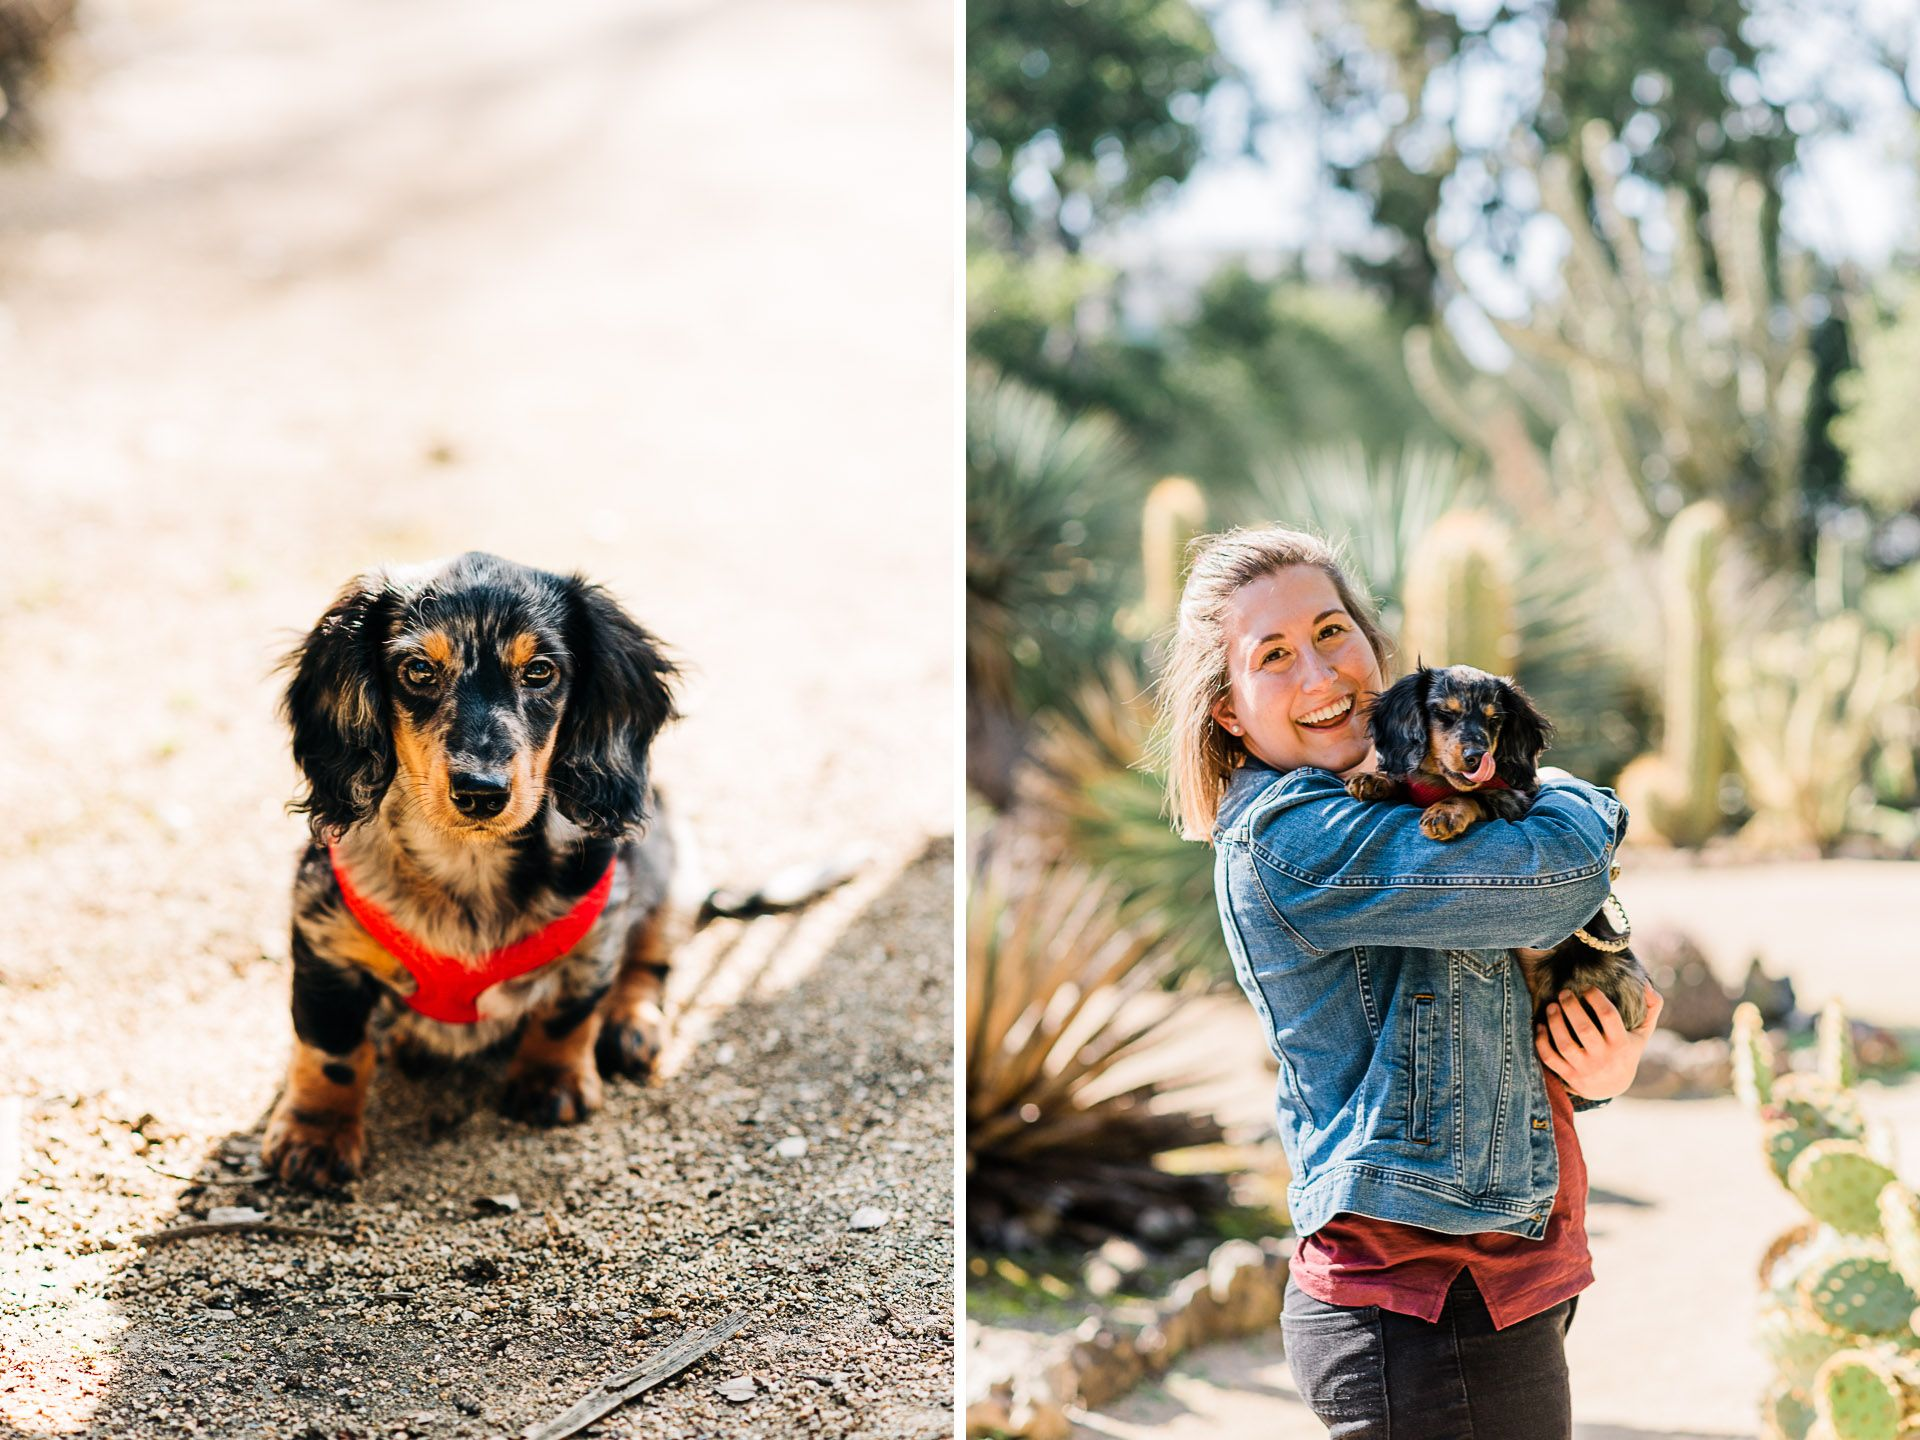 Pet Portrait Of A Tricolor Long Haired Wiener Dog